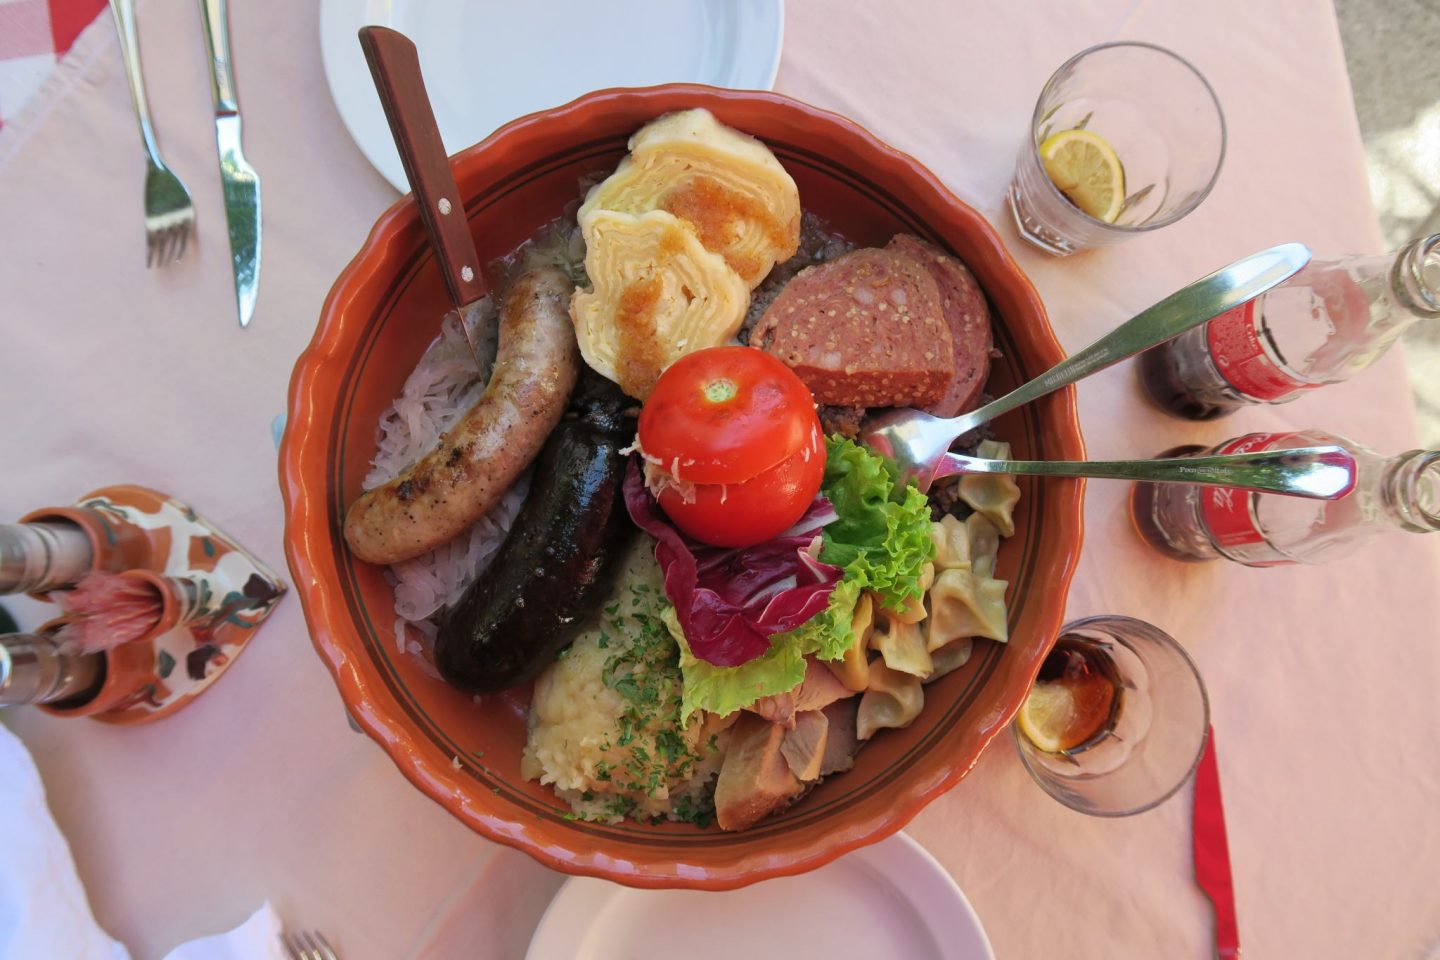 A large bowl full of traditional Slovenian food.